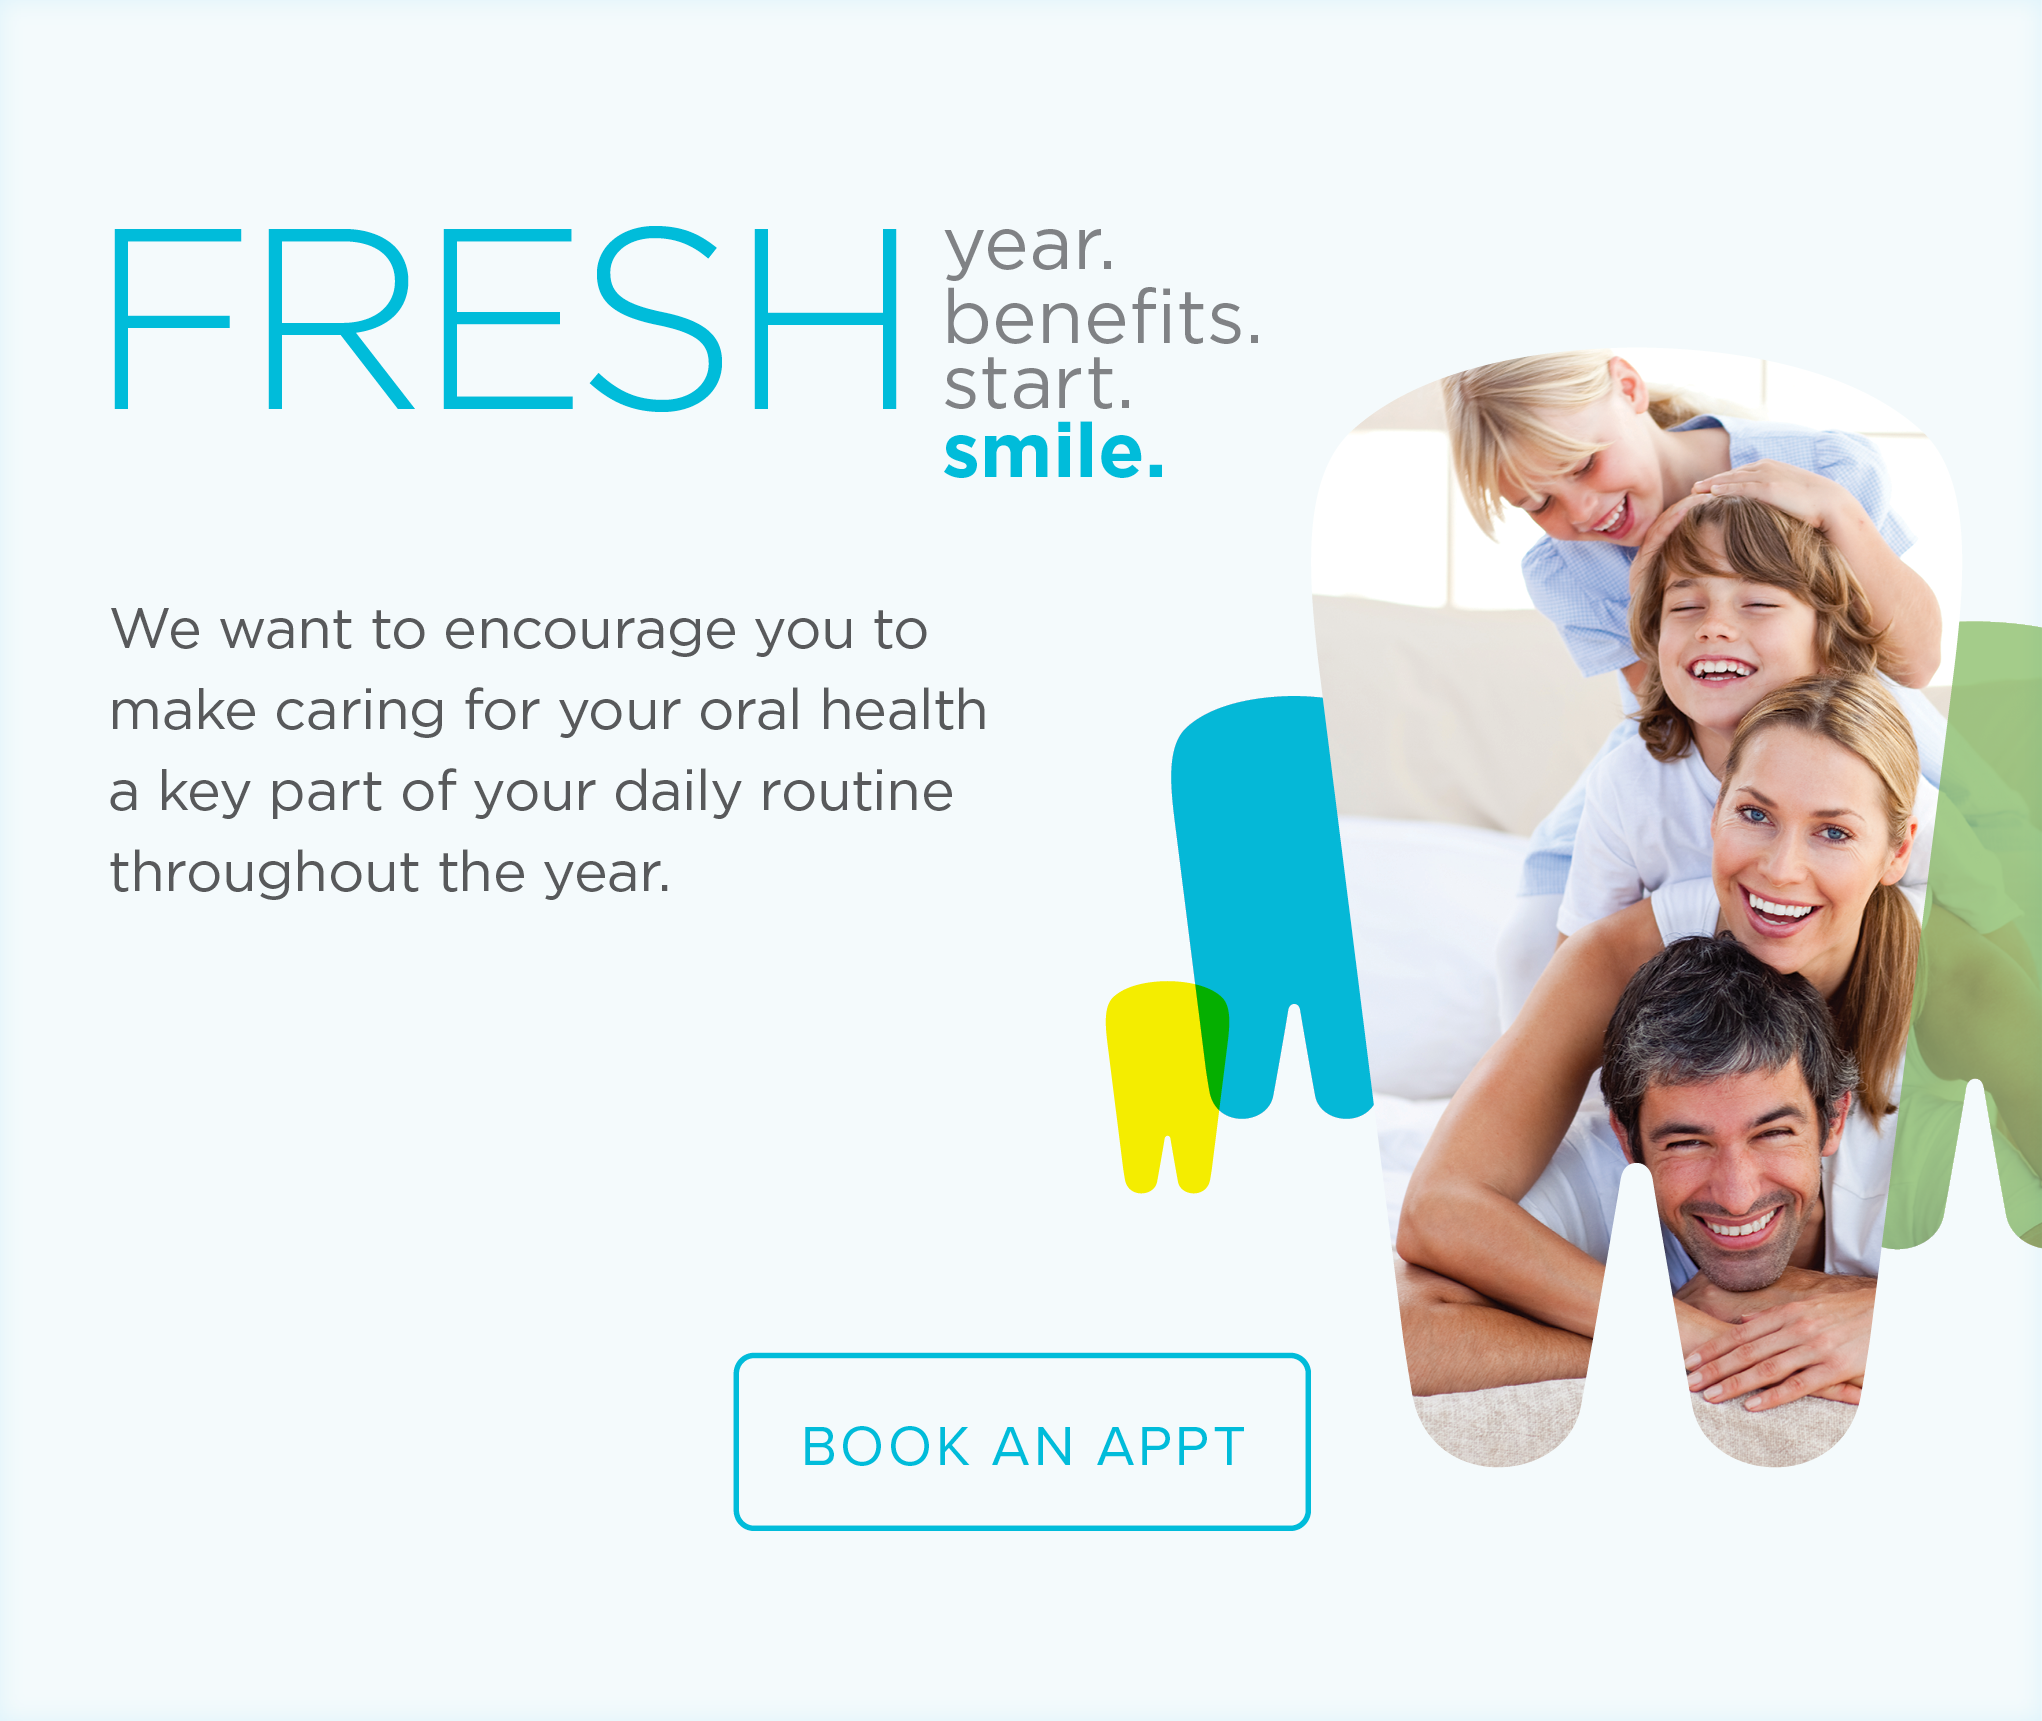 The Dental Office of Carson - Make the Most of Your Benefits